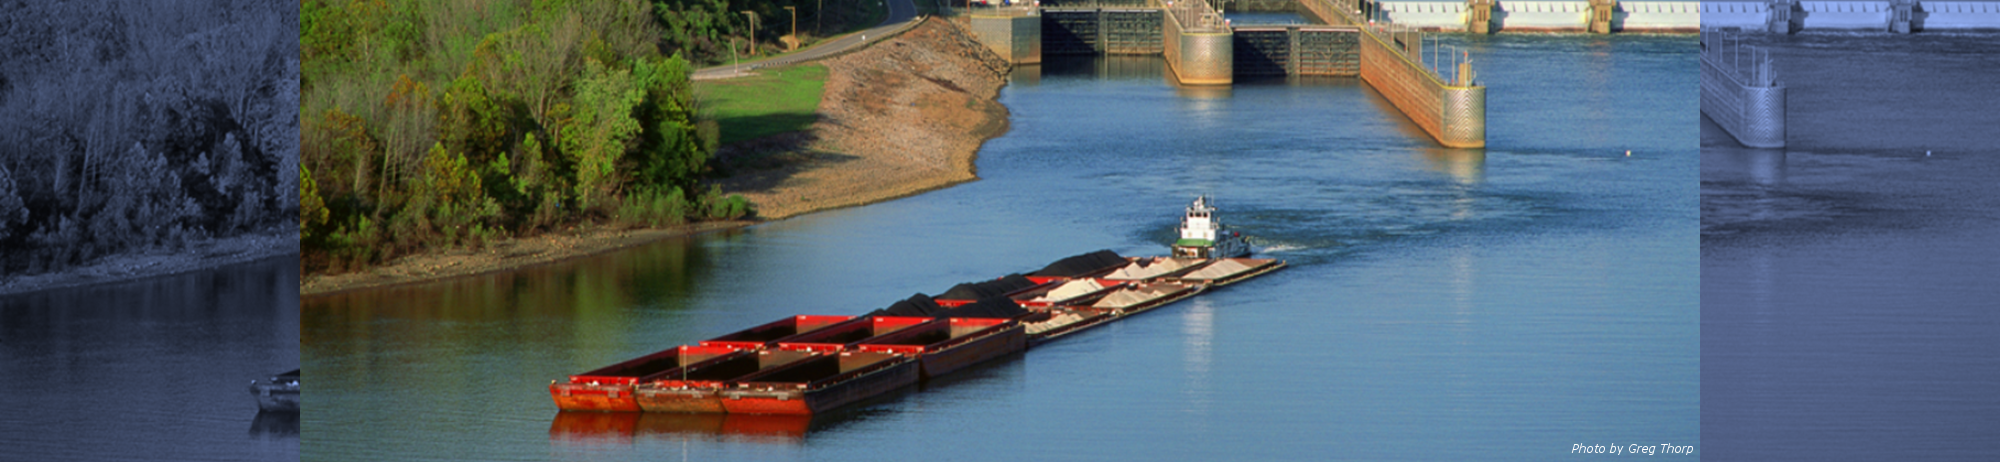 462 Our Solutions - Barge Transportation